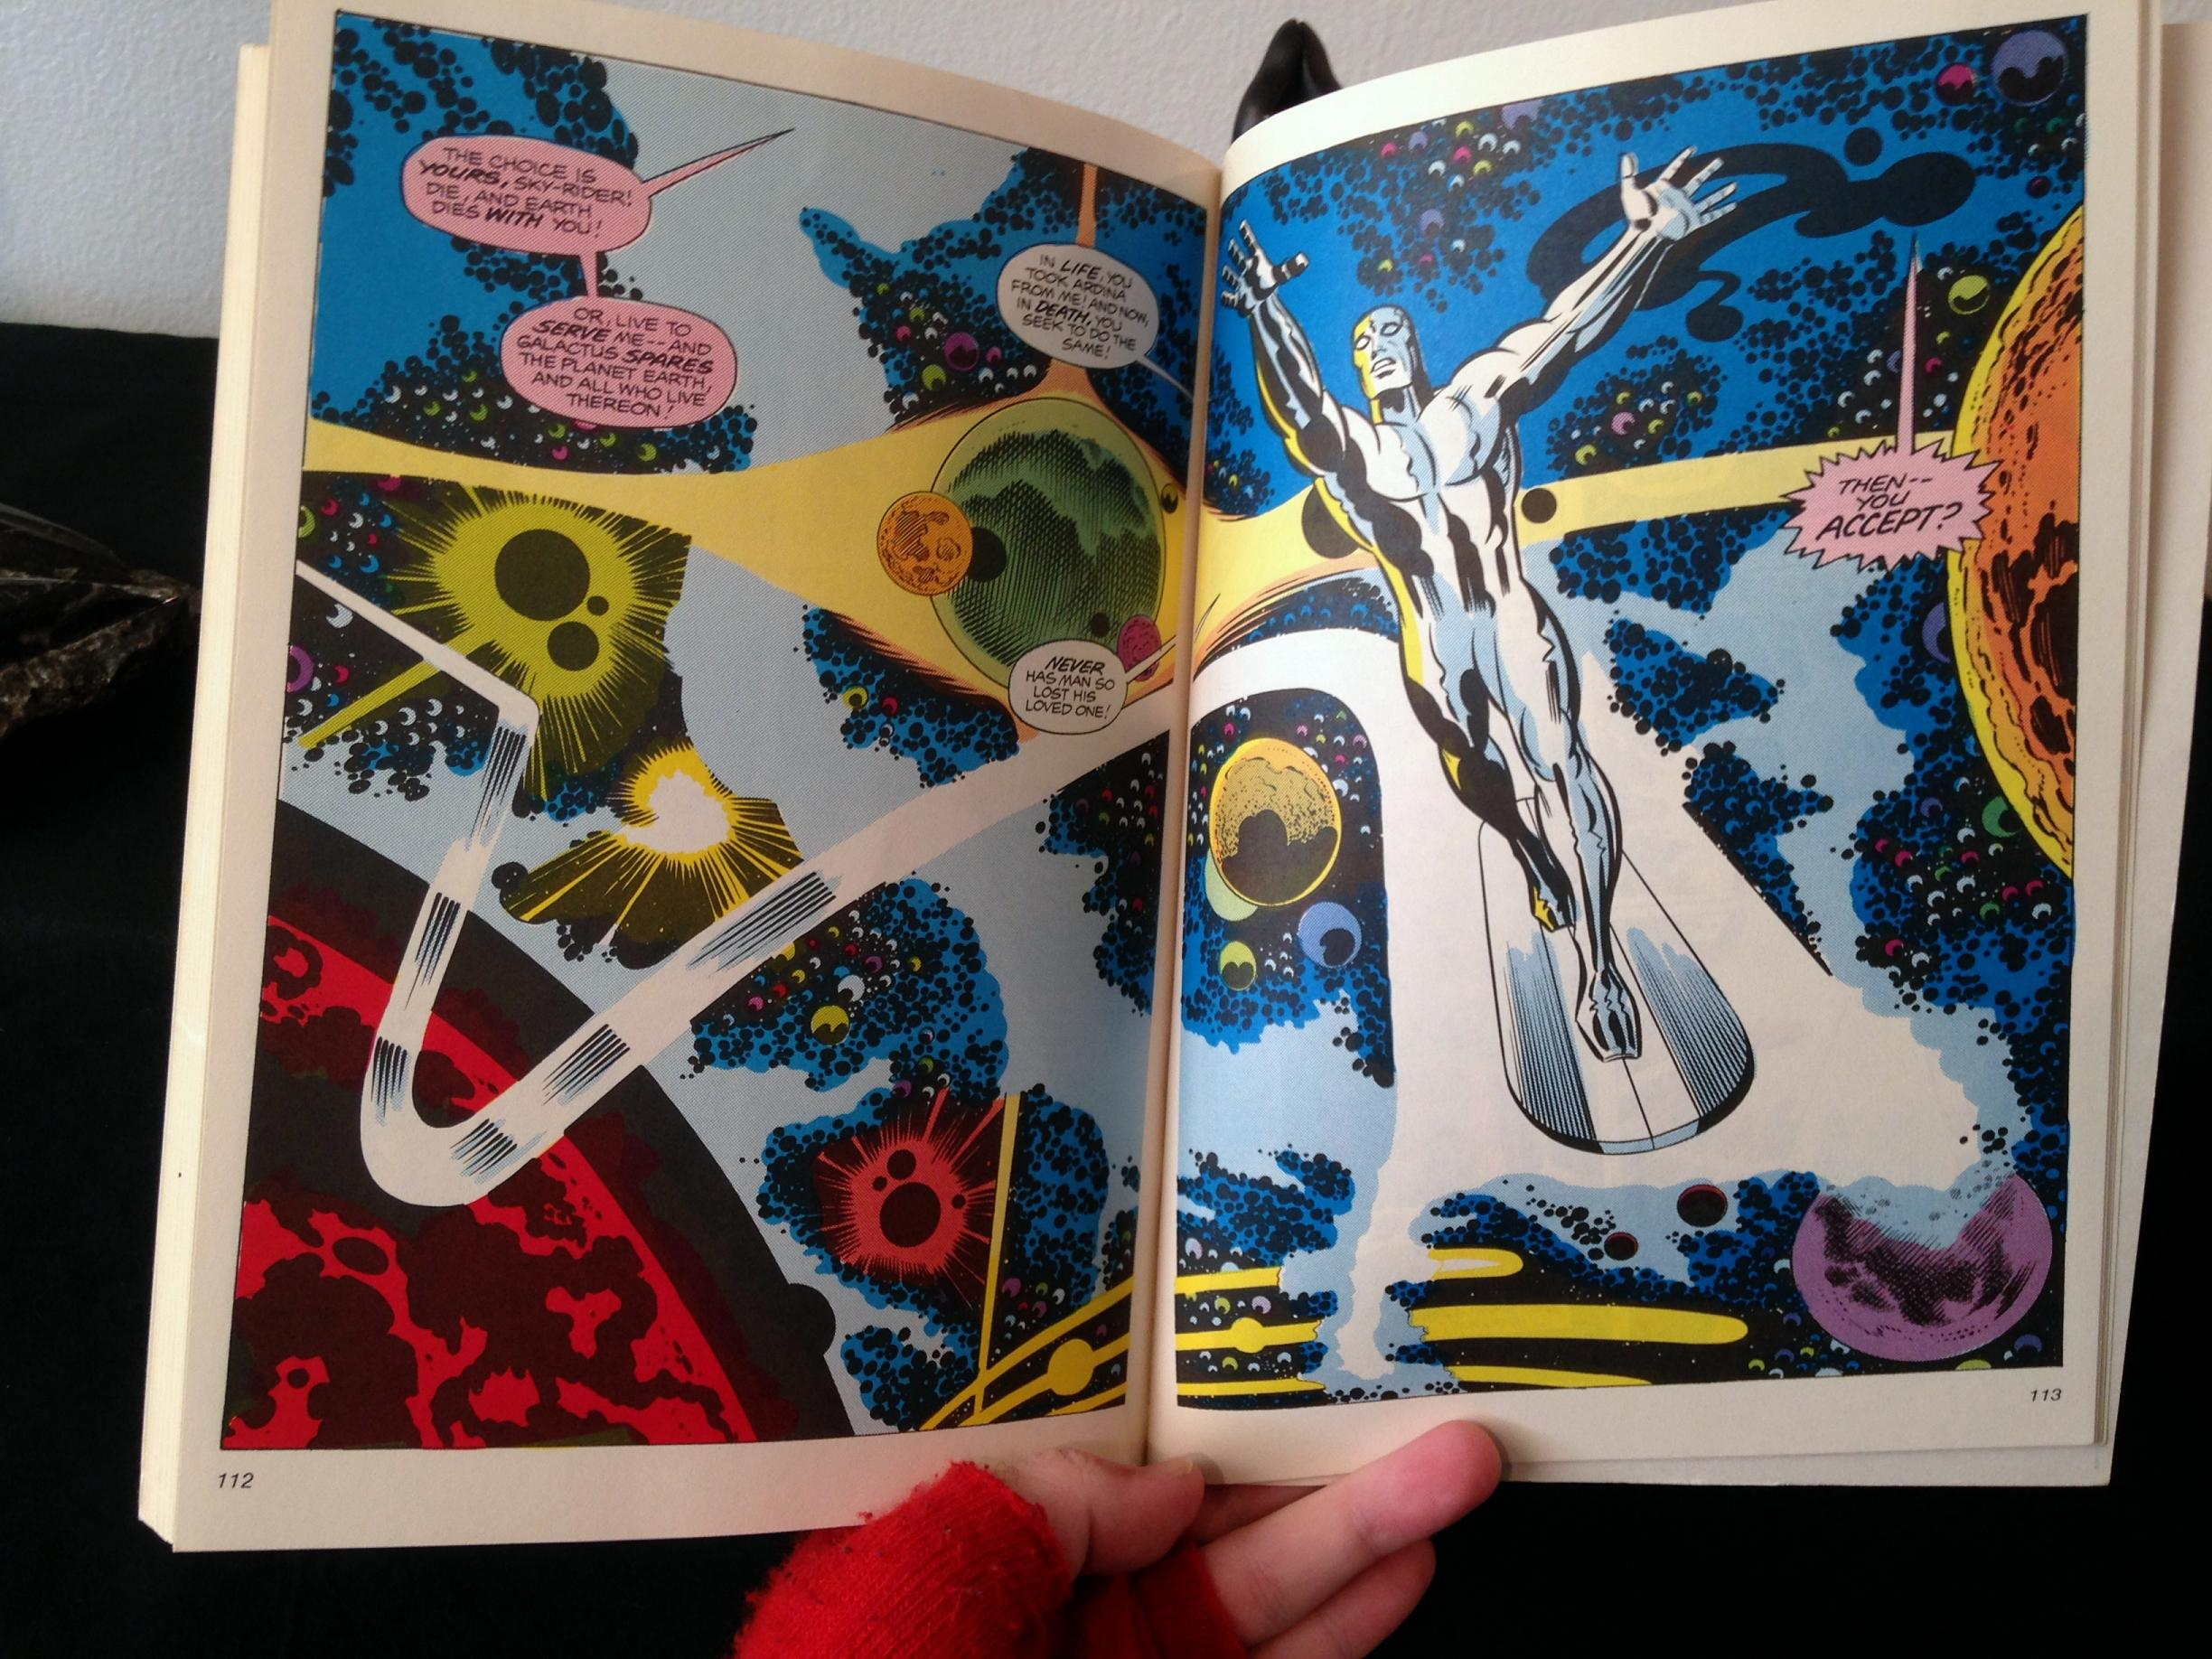 Silver Surfer by Stan Lee and Jack Kirby (17)